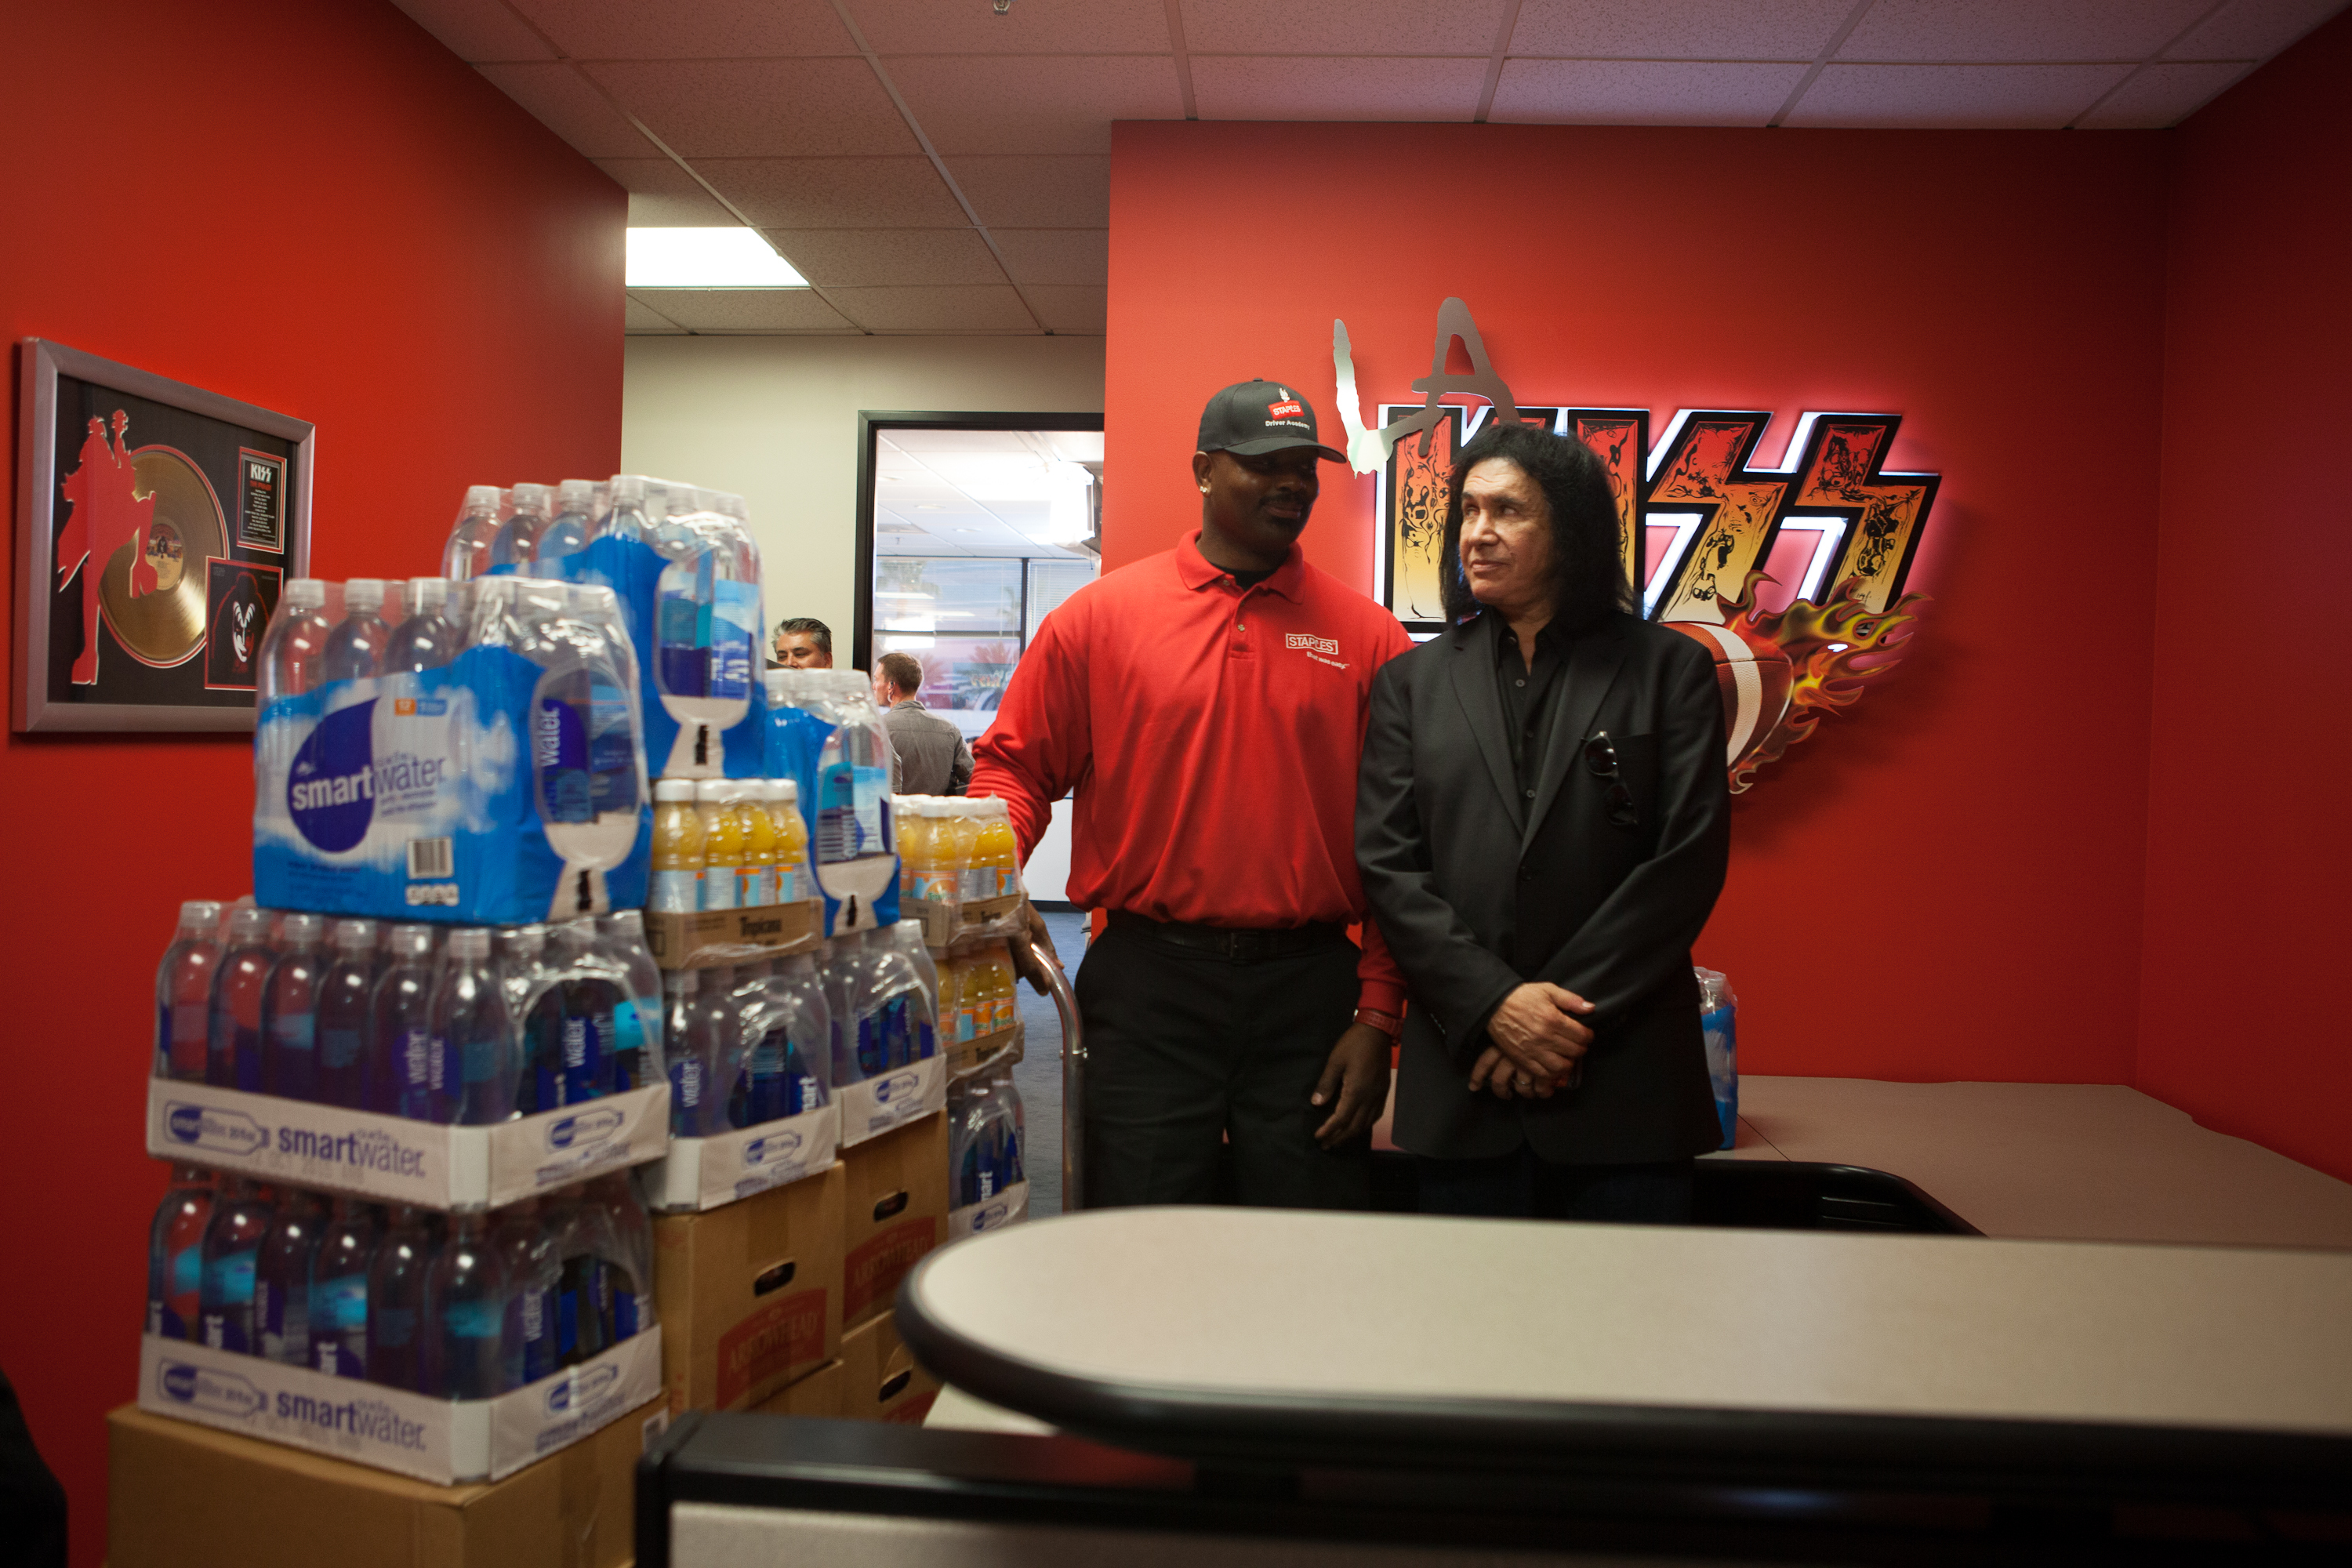 LA KISS football team debuts with help from Staples (Photo: Business Wire)